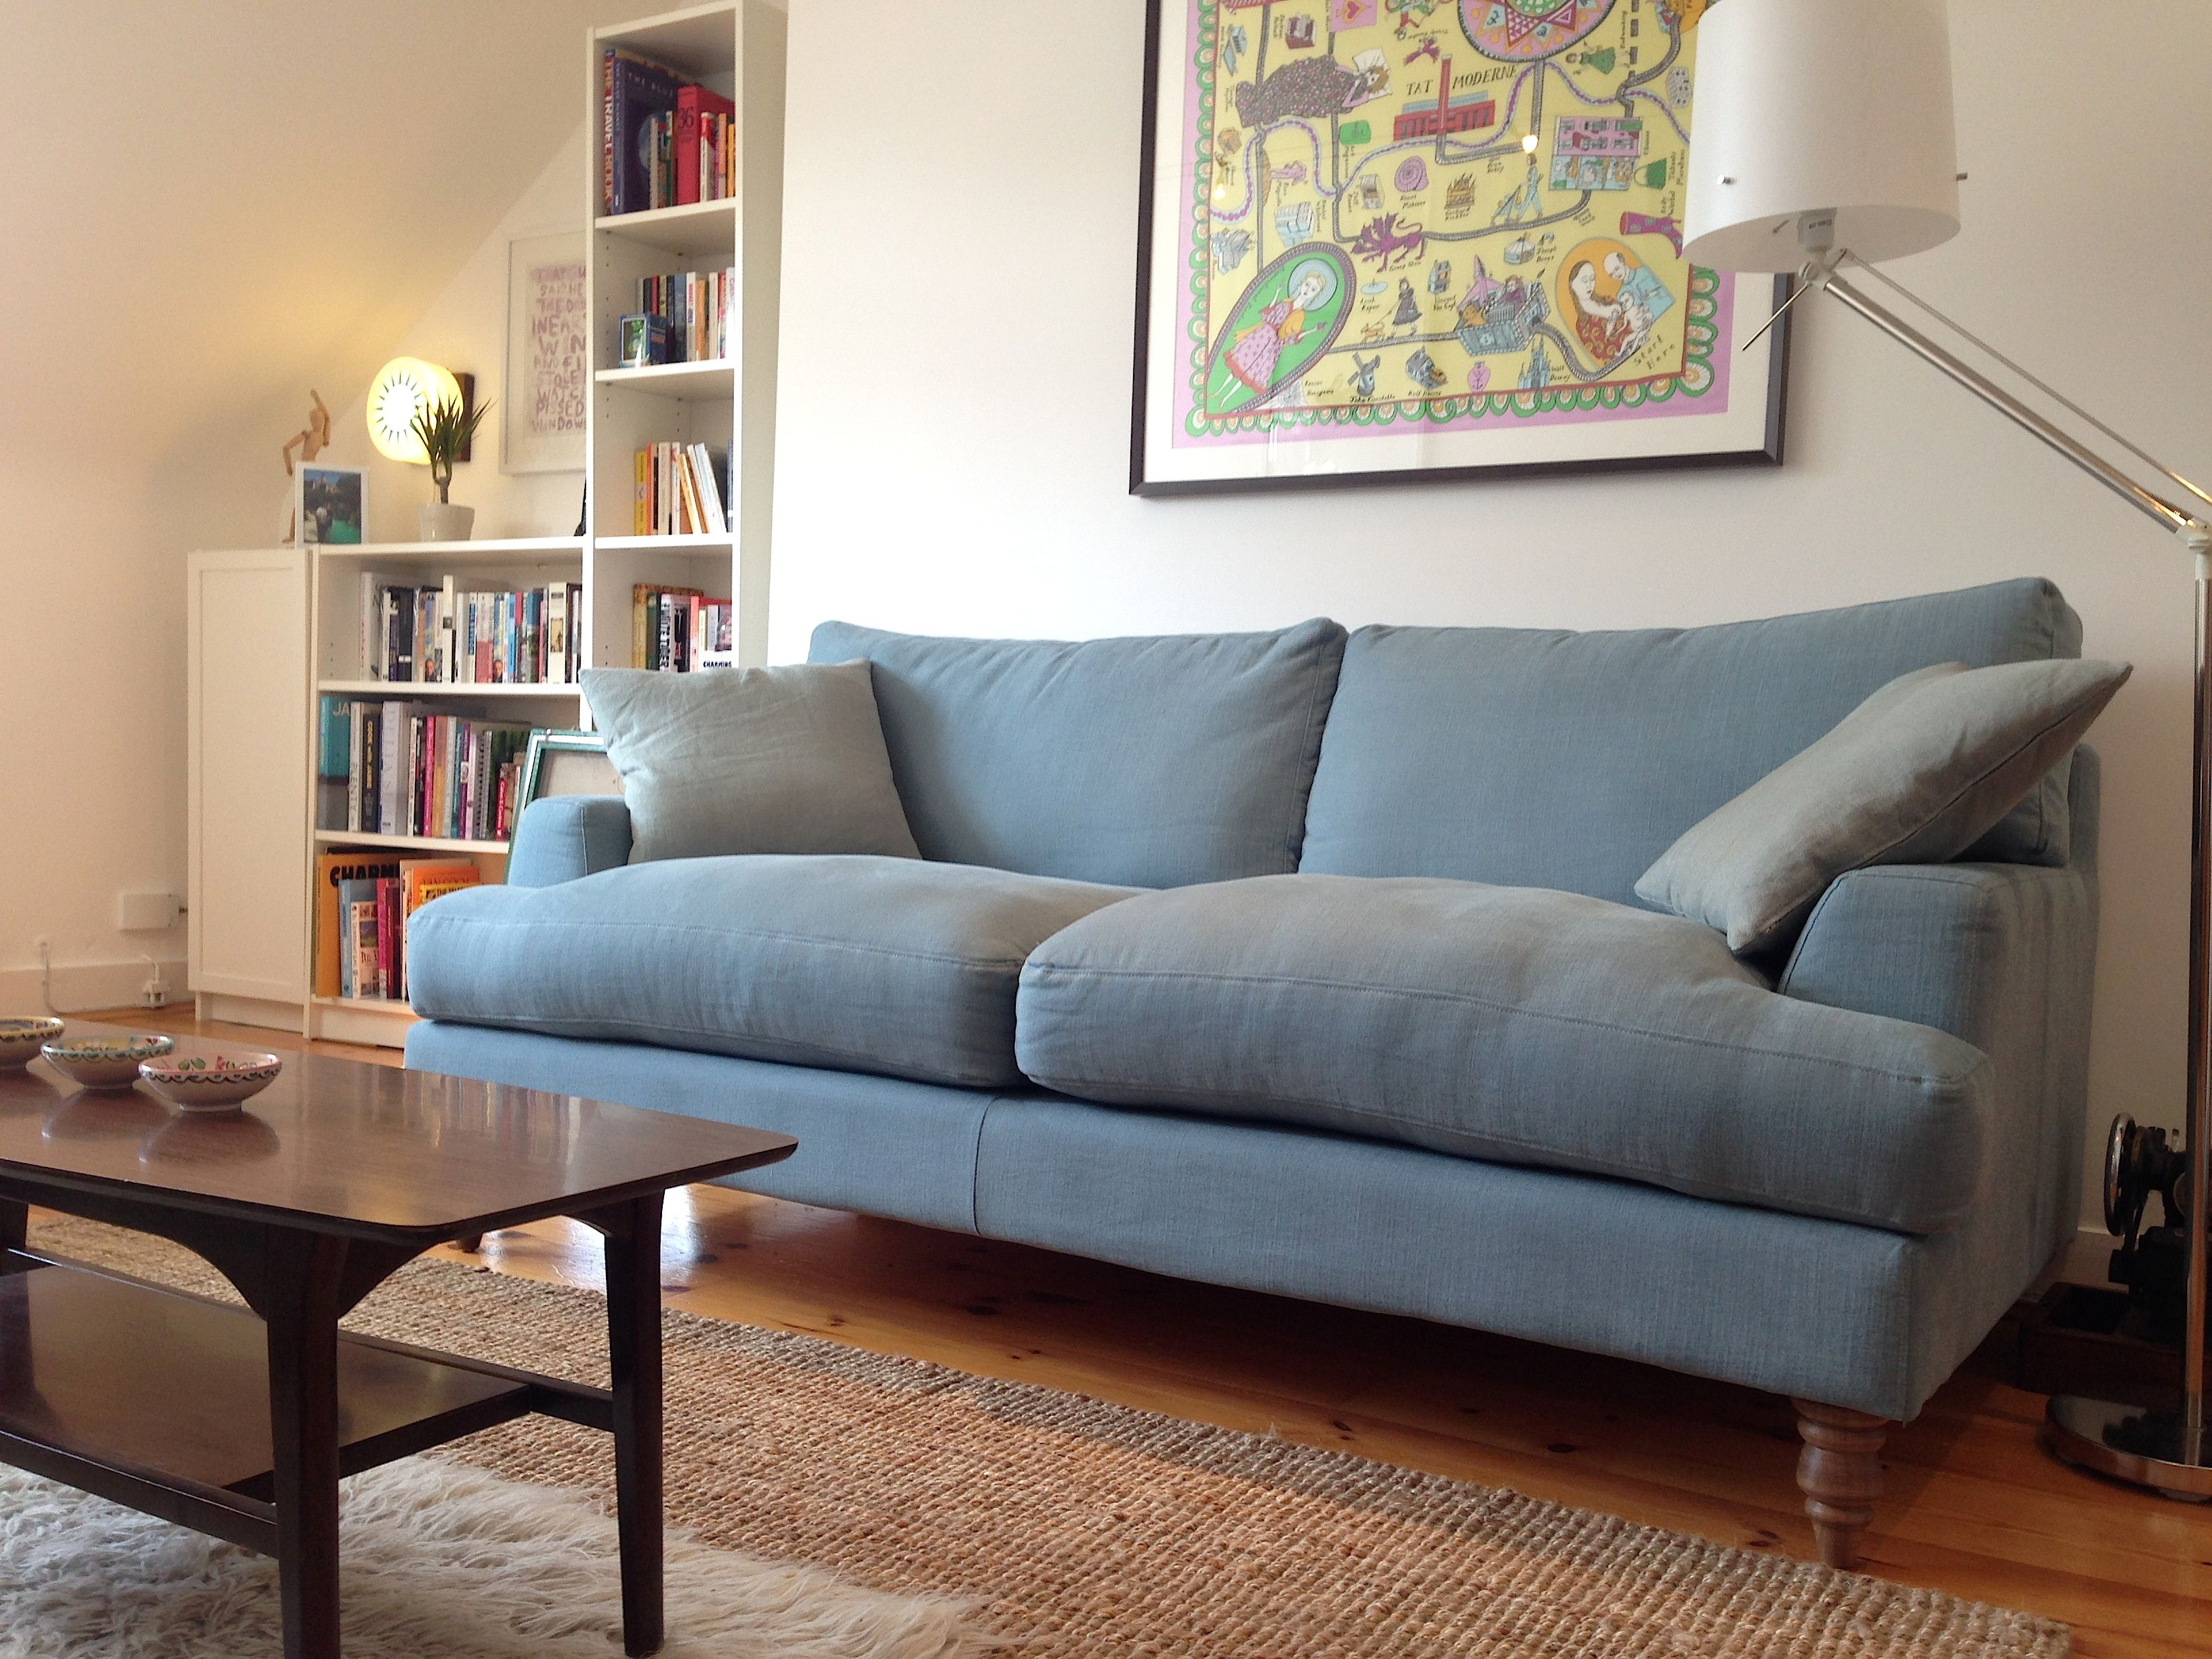 Lucy s Isla sofa in Lagoon brushed linen cotton looking neat and